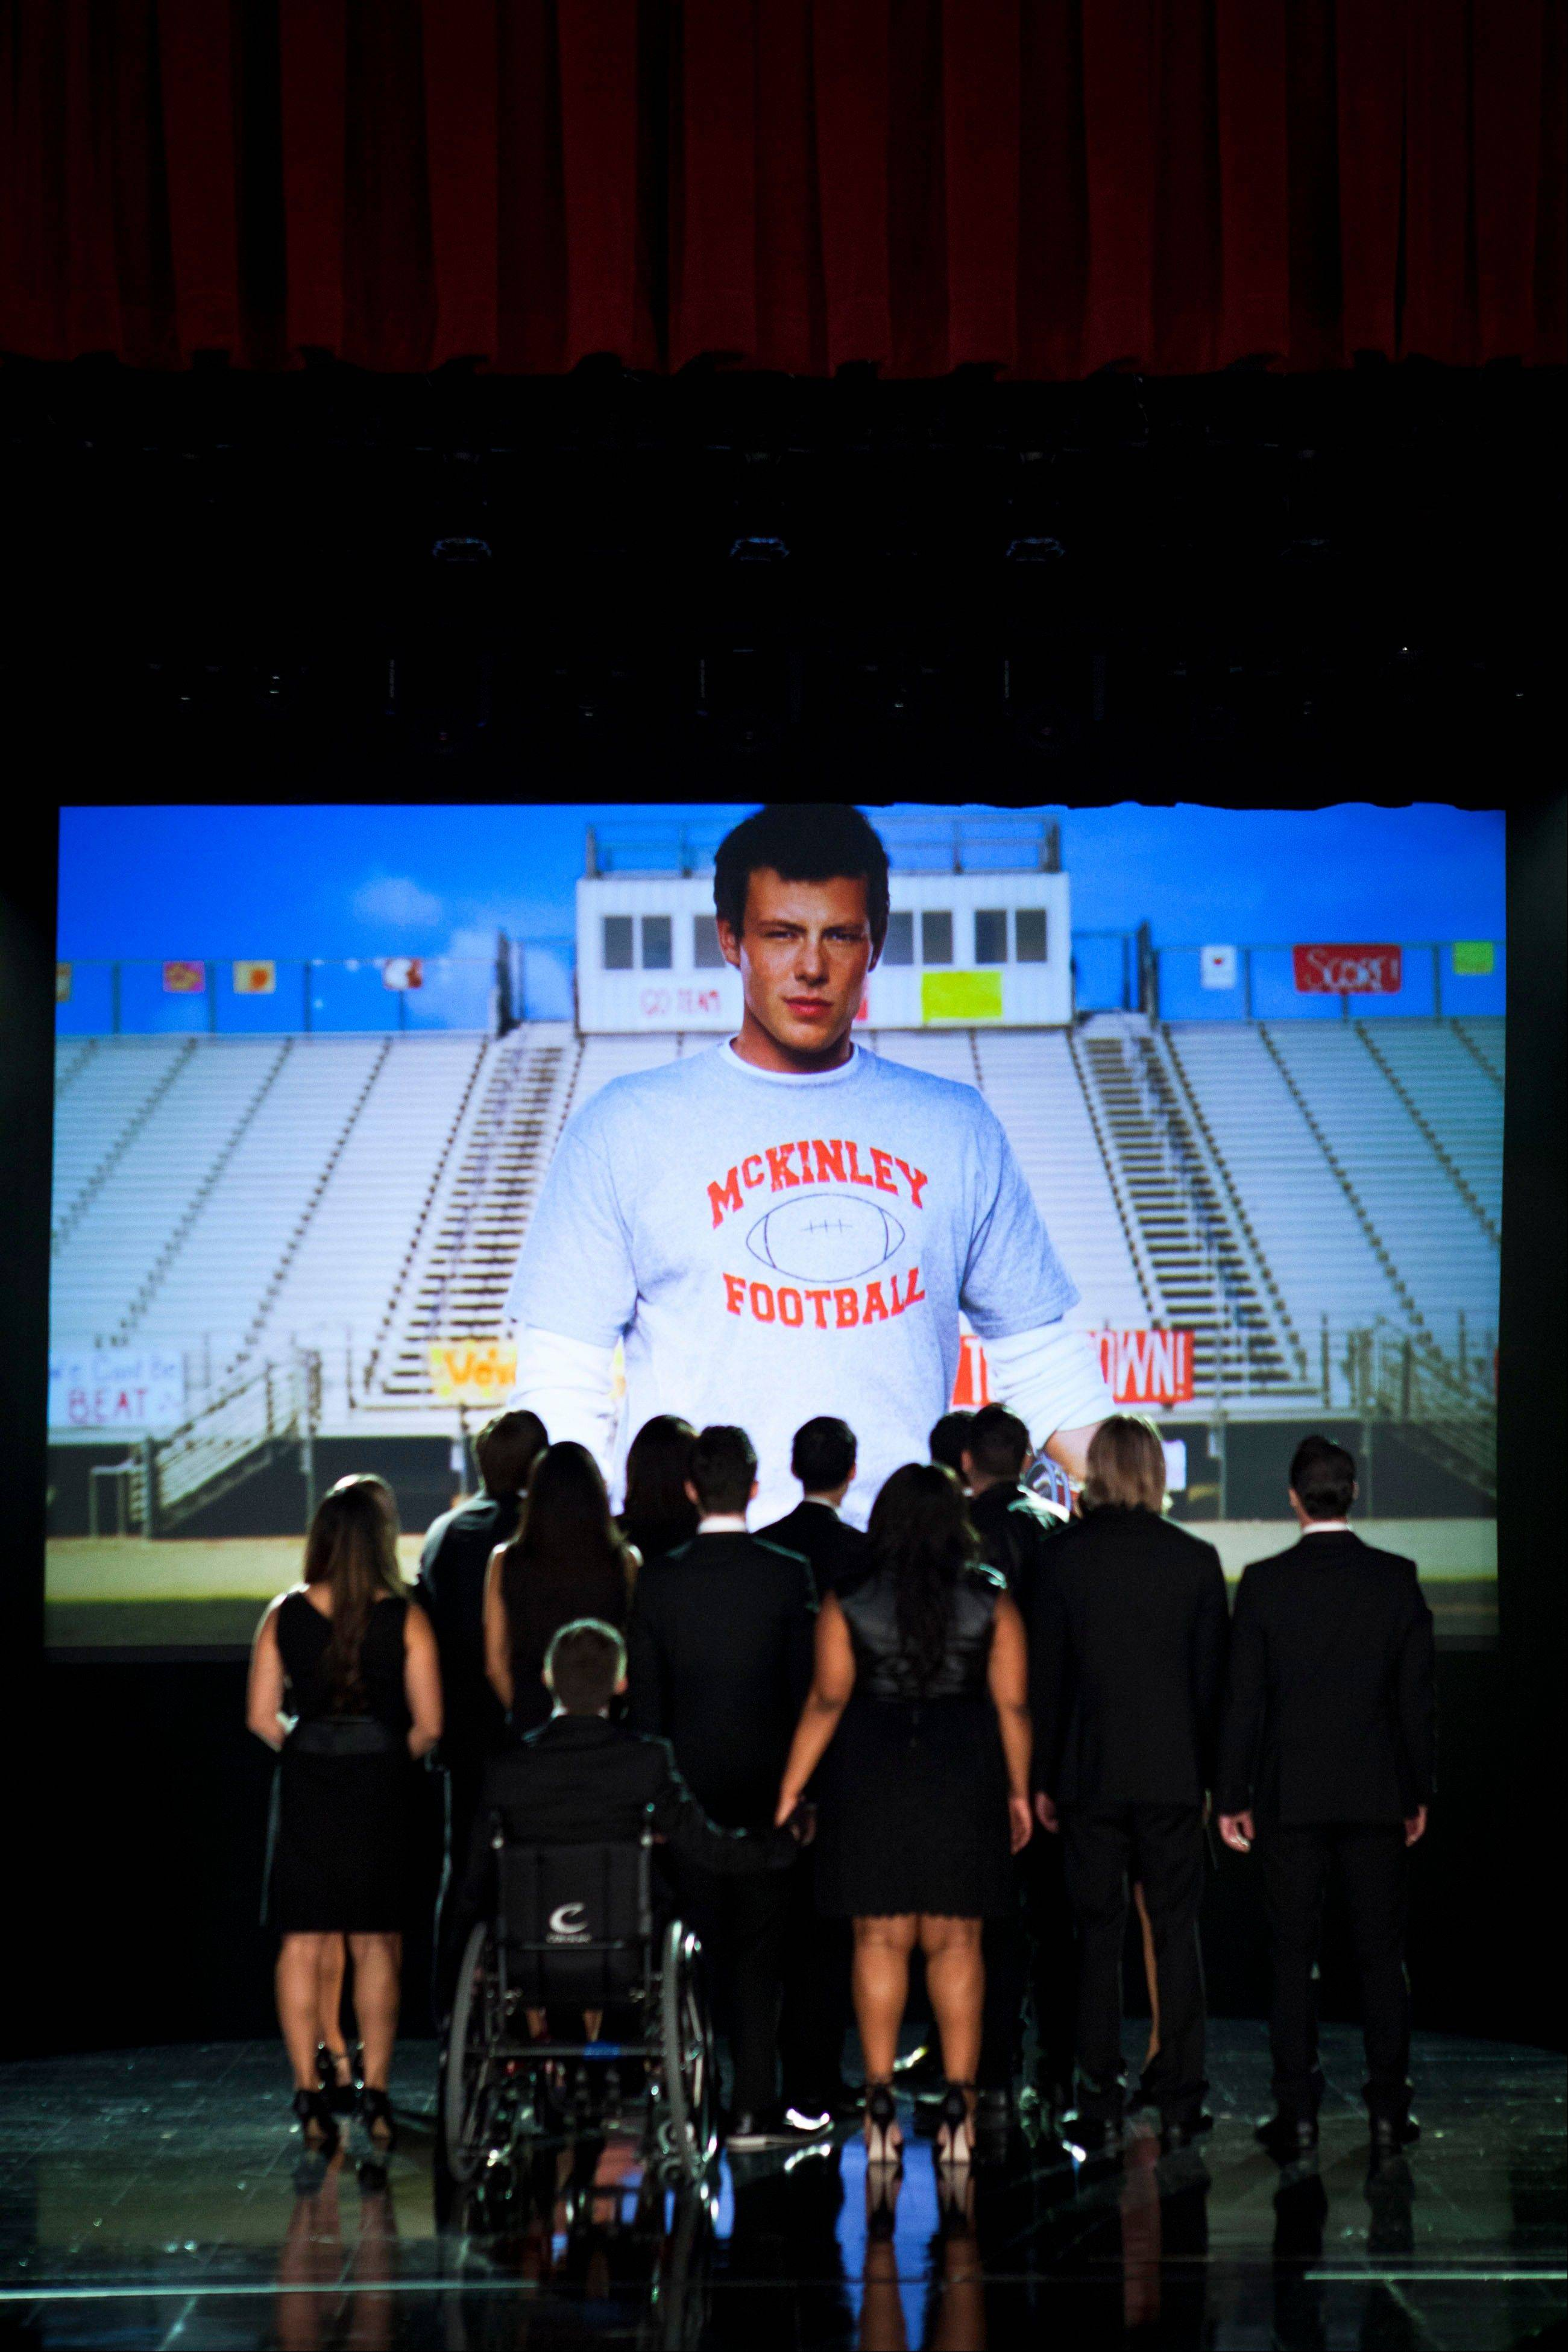 "The McKinley family of the past and present joined together to remember and celebrate the life of Finn Hudson in ""The Quarterback"" episode of ""Glee."" The high school musical drama said goodbye to Finn, its beloved singer-quarterback, while paying tribute to Cory Monteith, the late actor who had portrayed him, in a much-anticipated episode that aired Thursday."